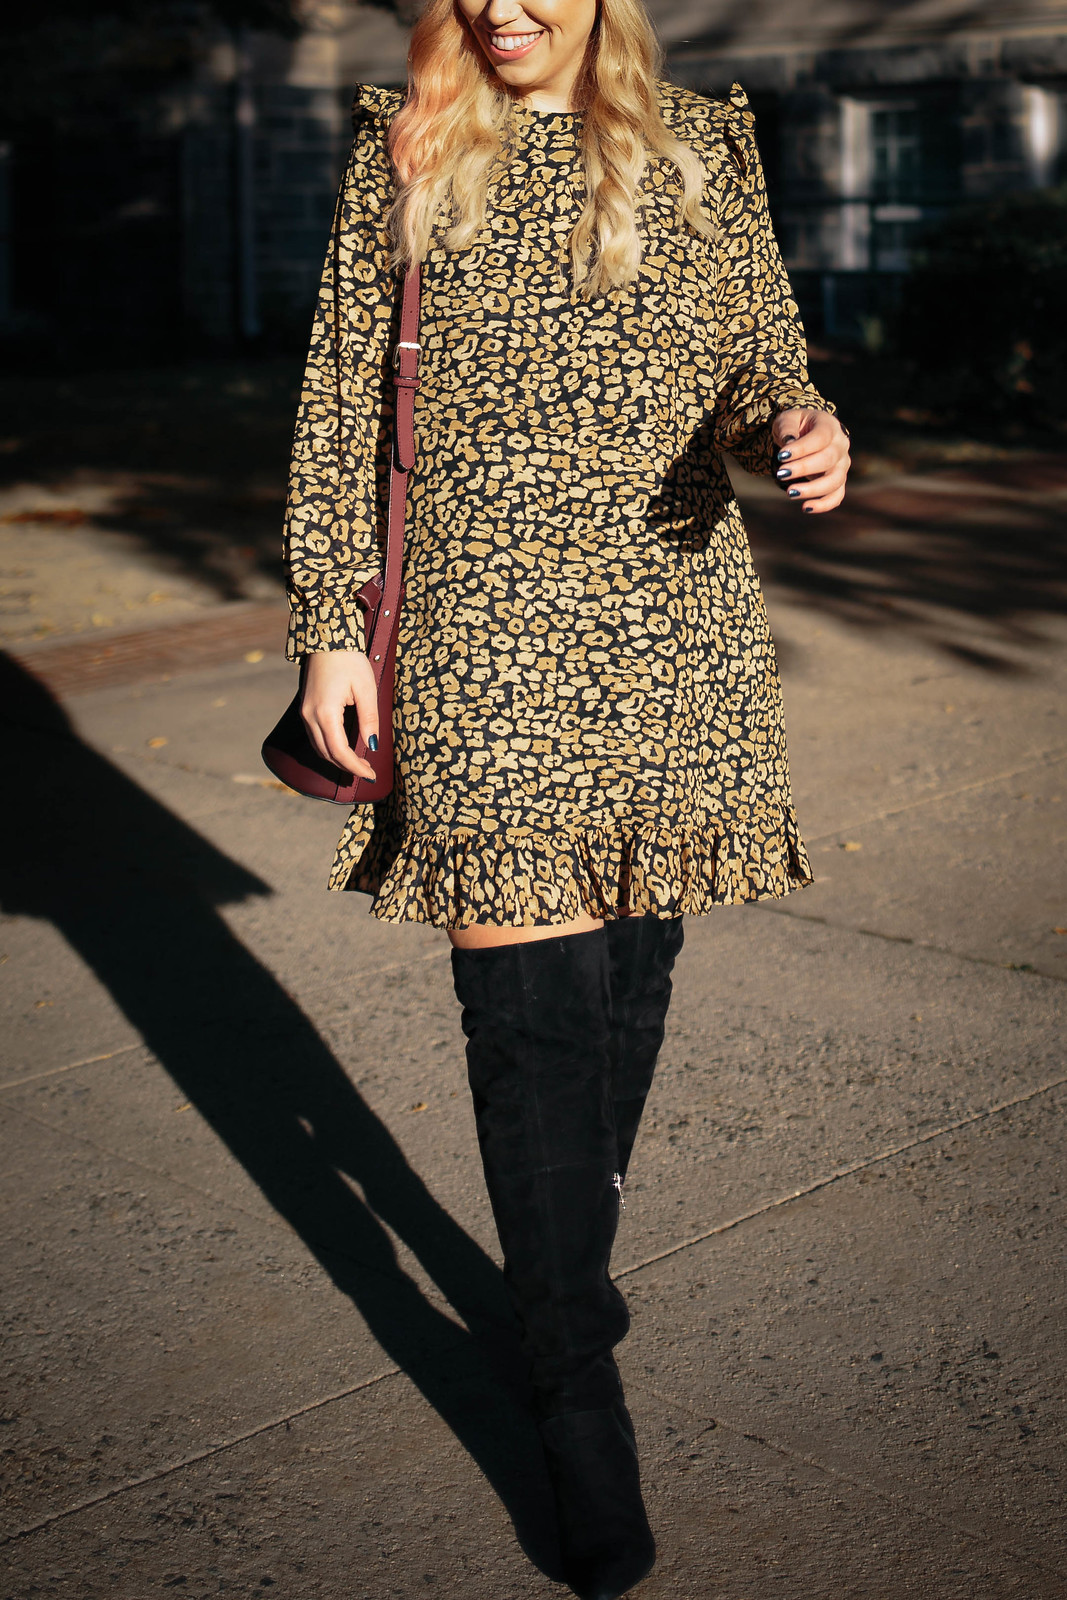 Yellow Leopard Print Ruffle Dress Fall Fashion